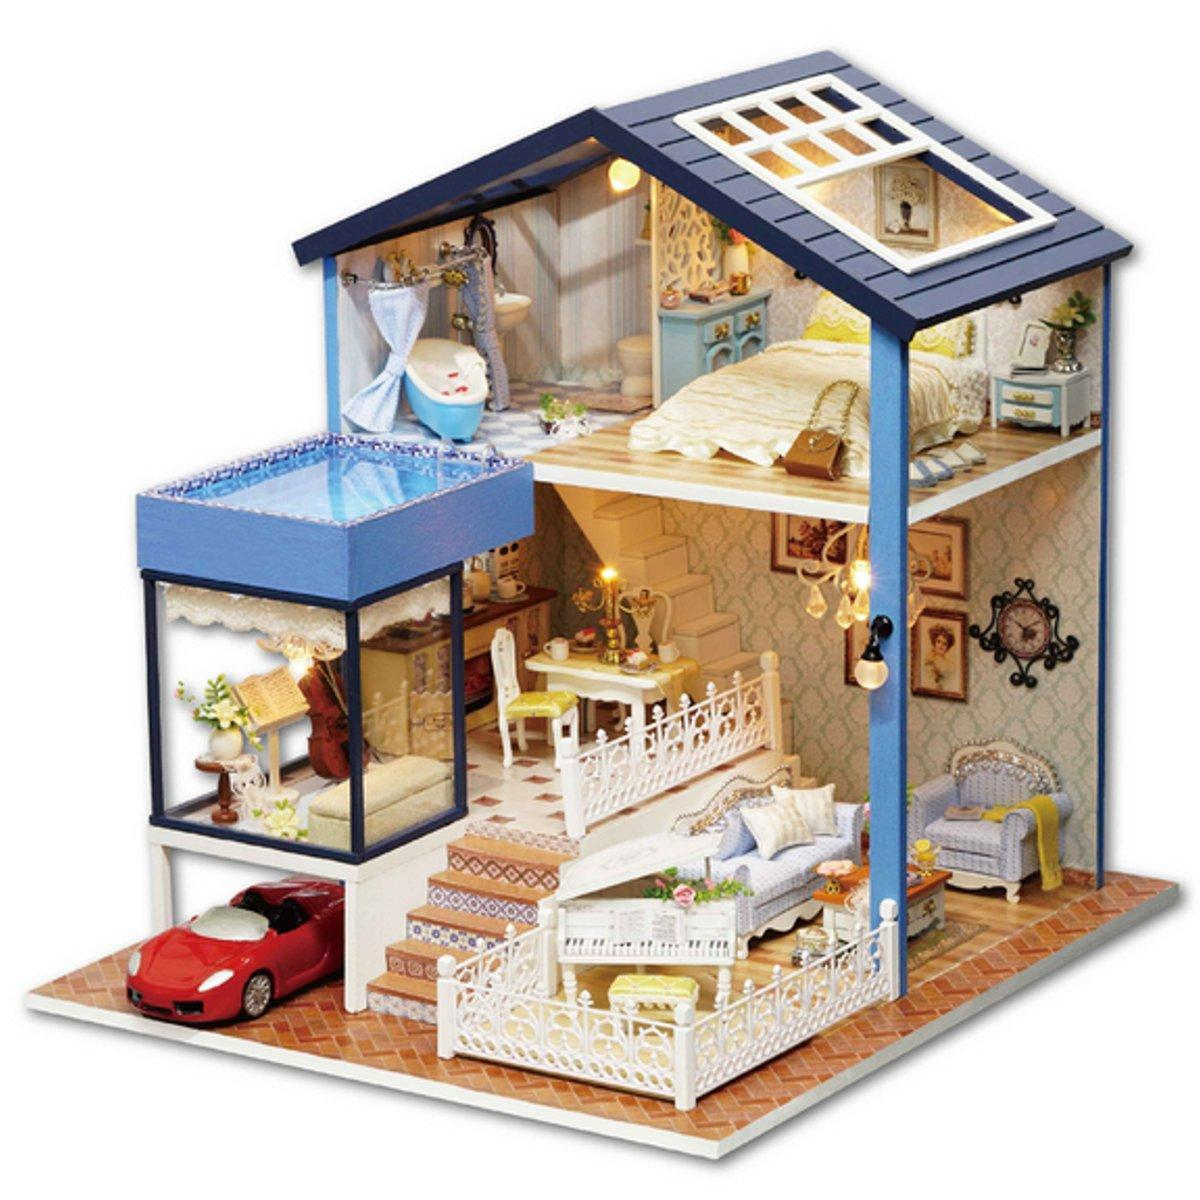 DIY Dollhouse Miniature Kit Doll House With Furniture Gift Craft Toy фото